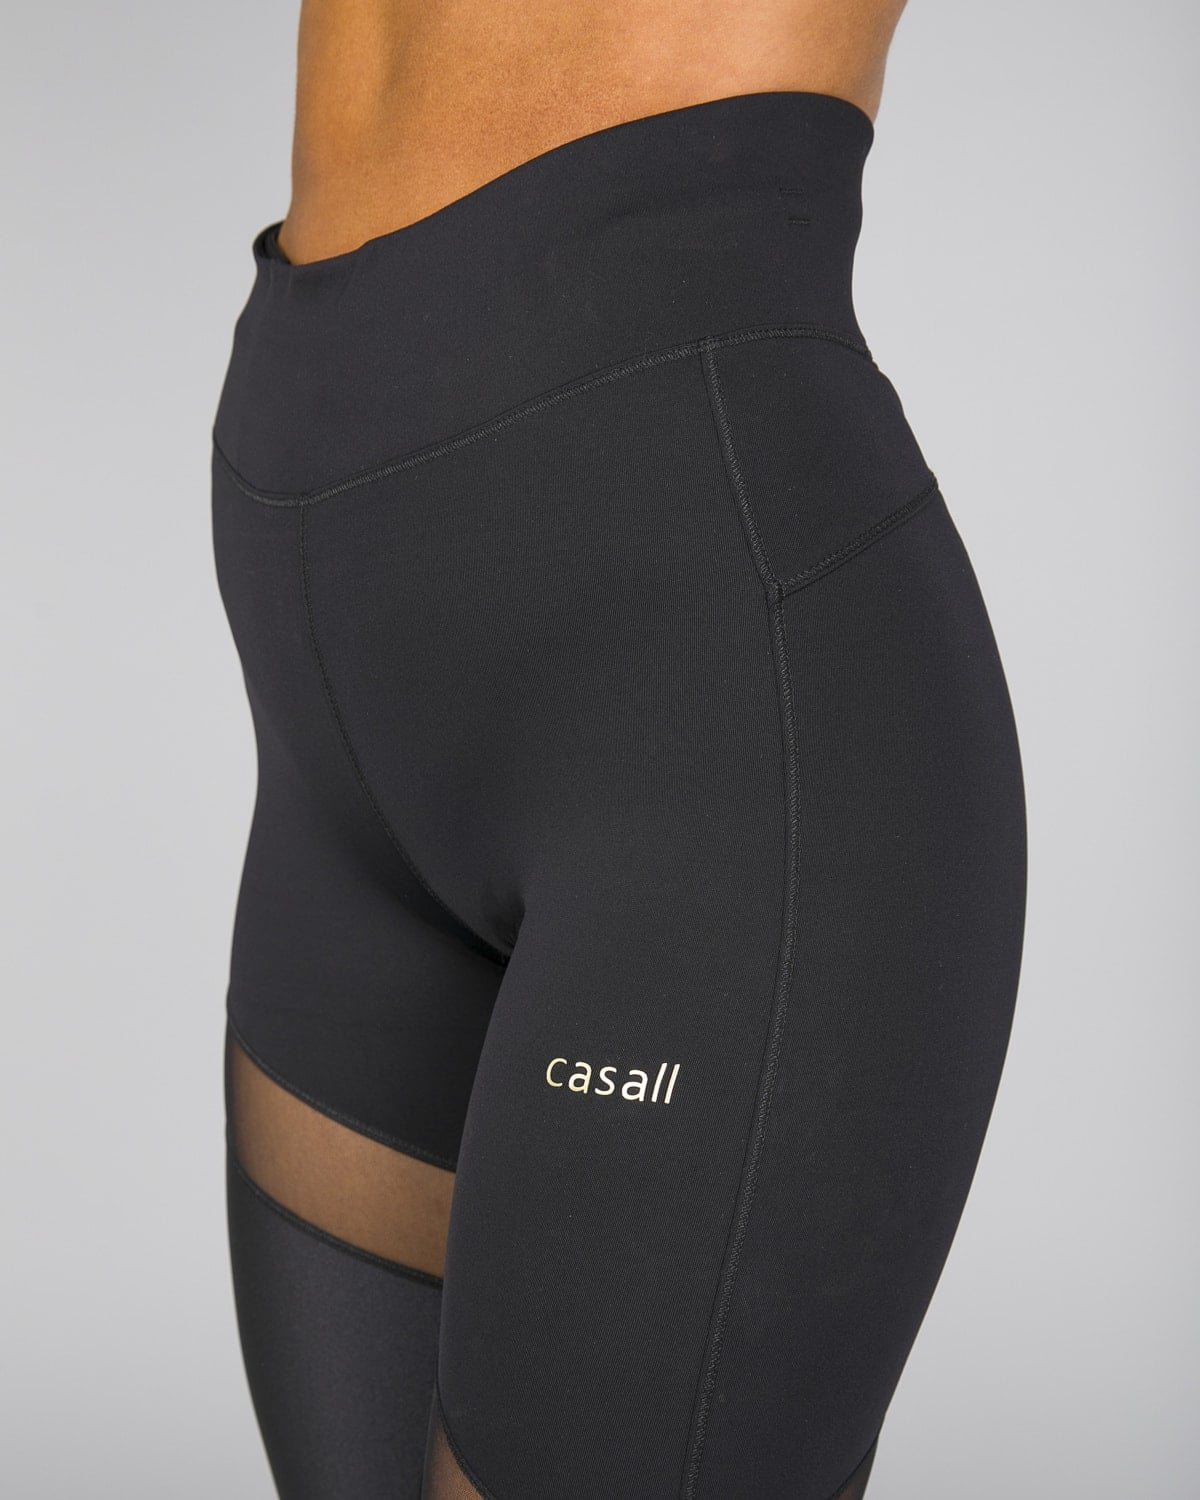 Casall Golden Lux 7:8 Tights11